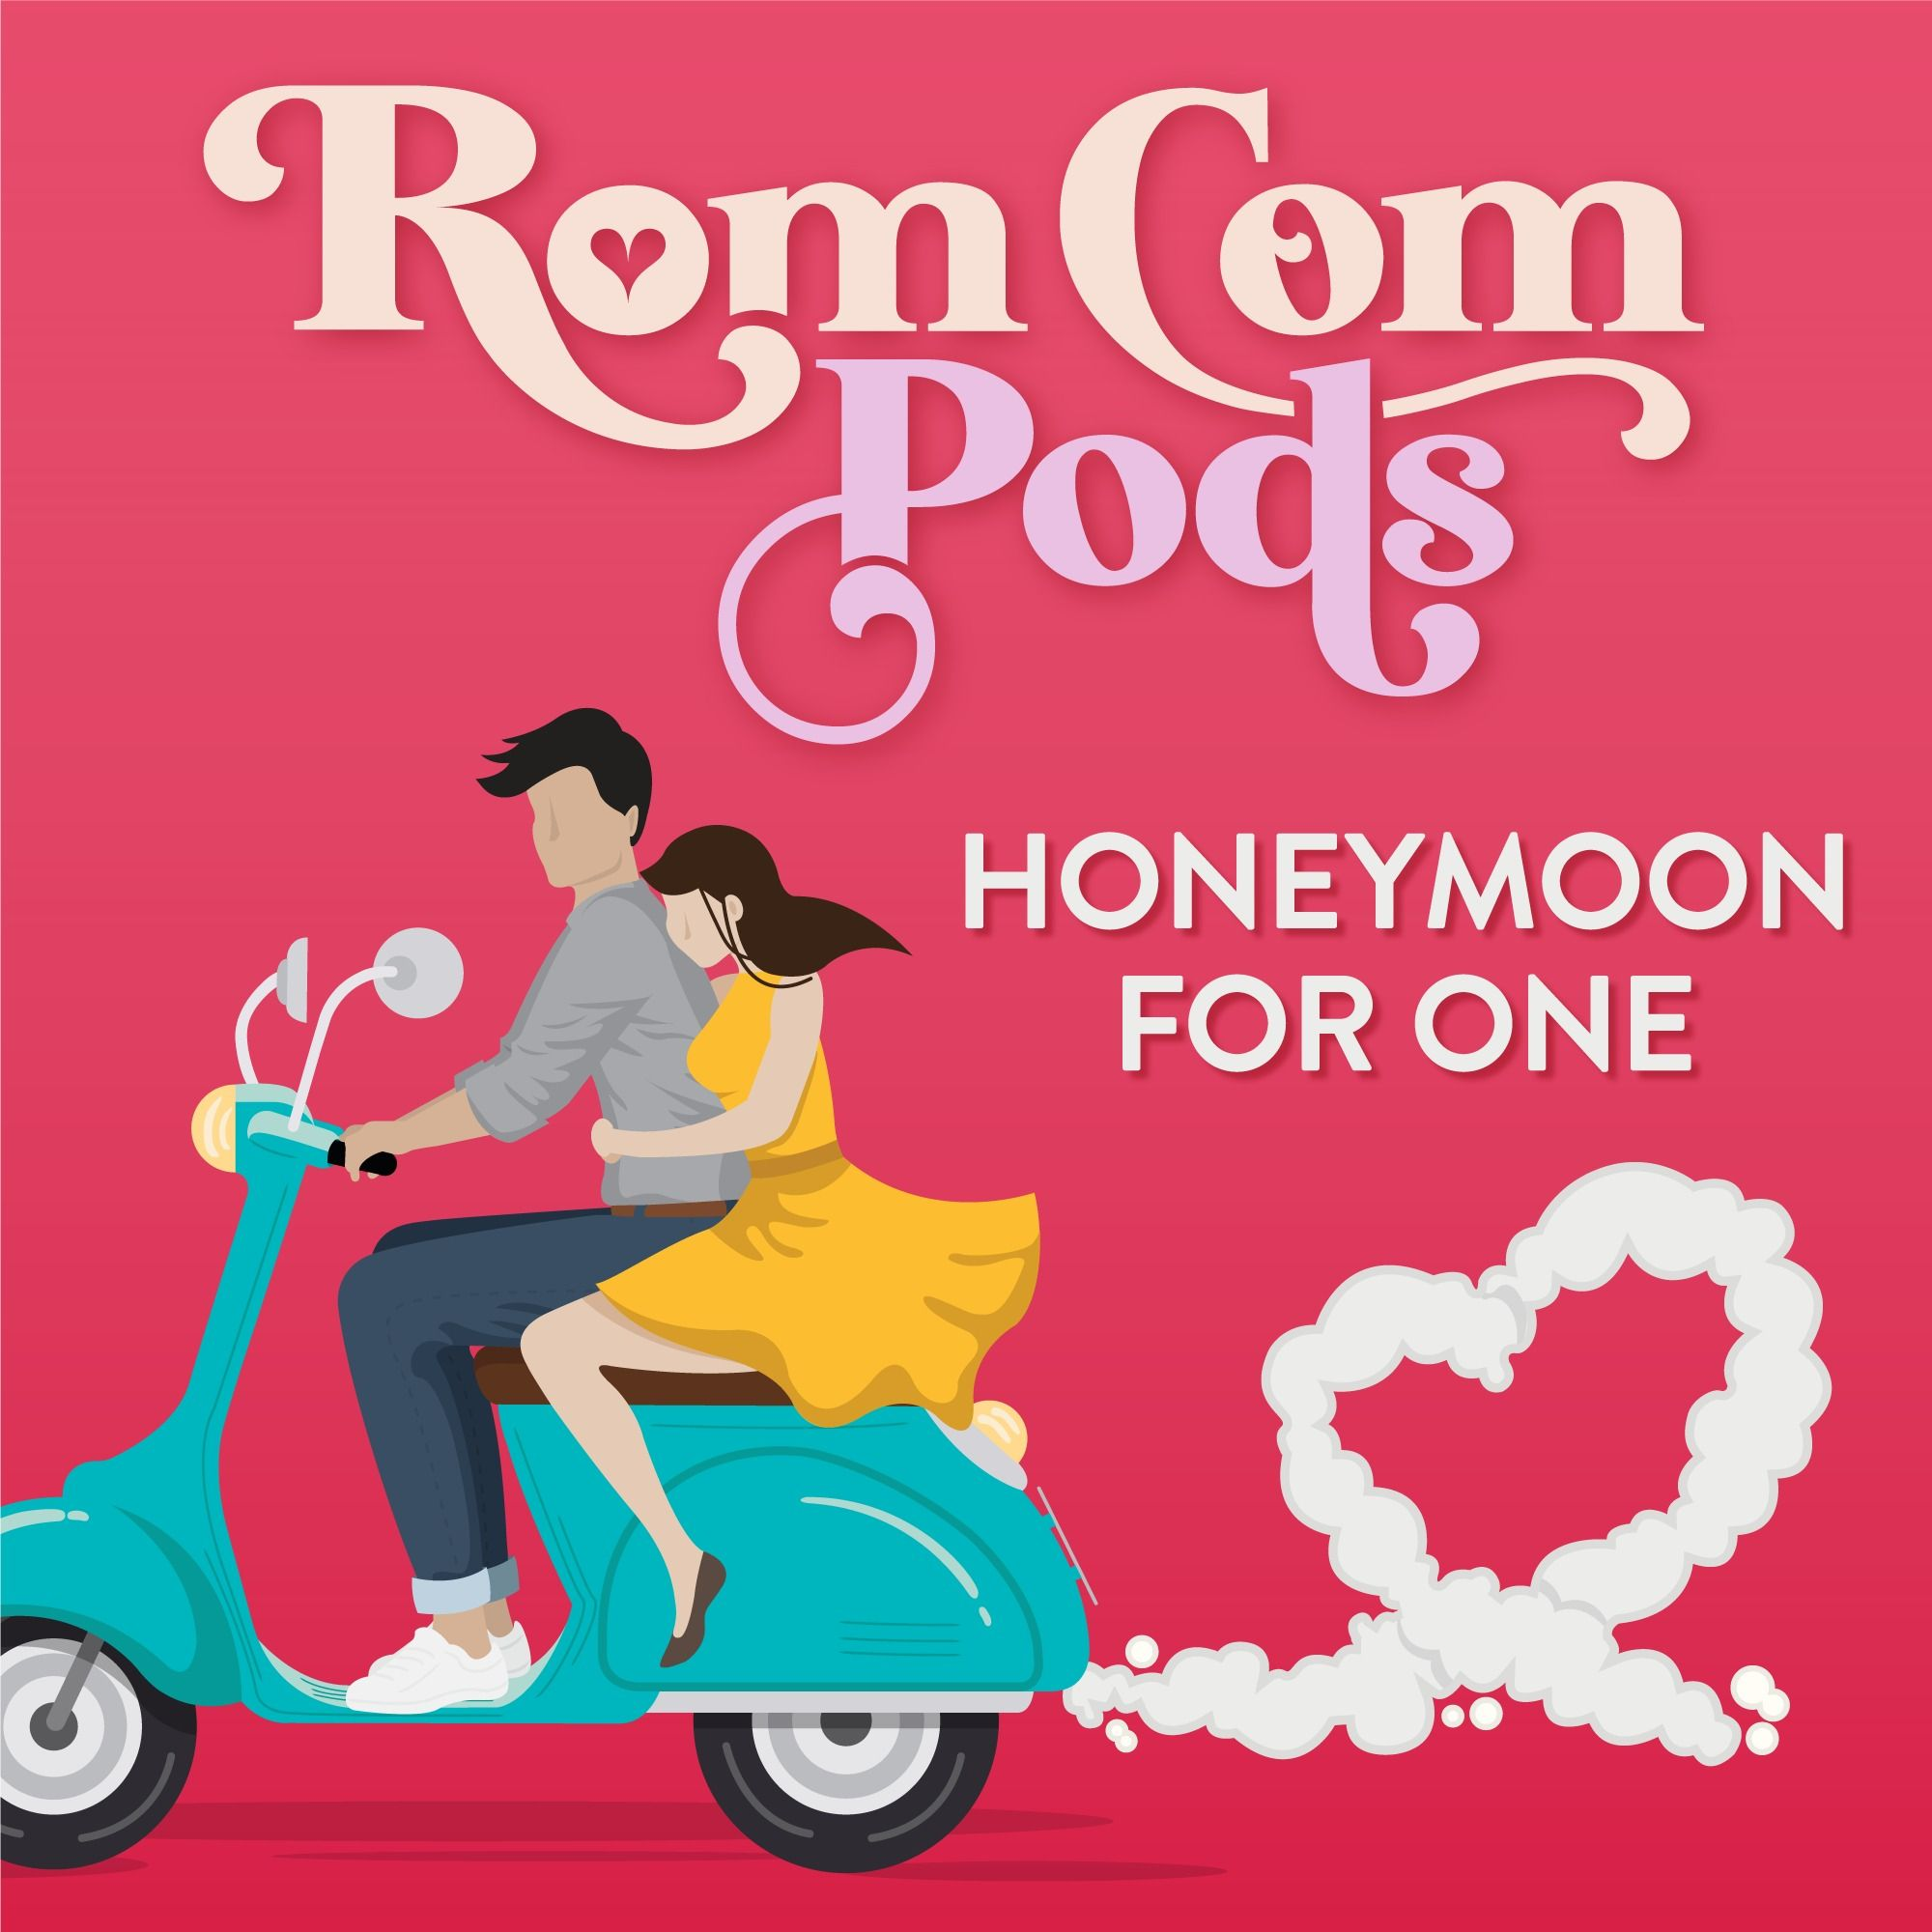 Season 1: Honeymoon for One Trailer